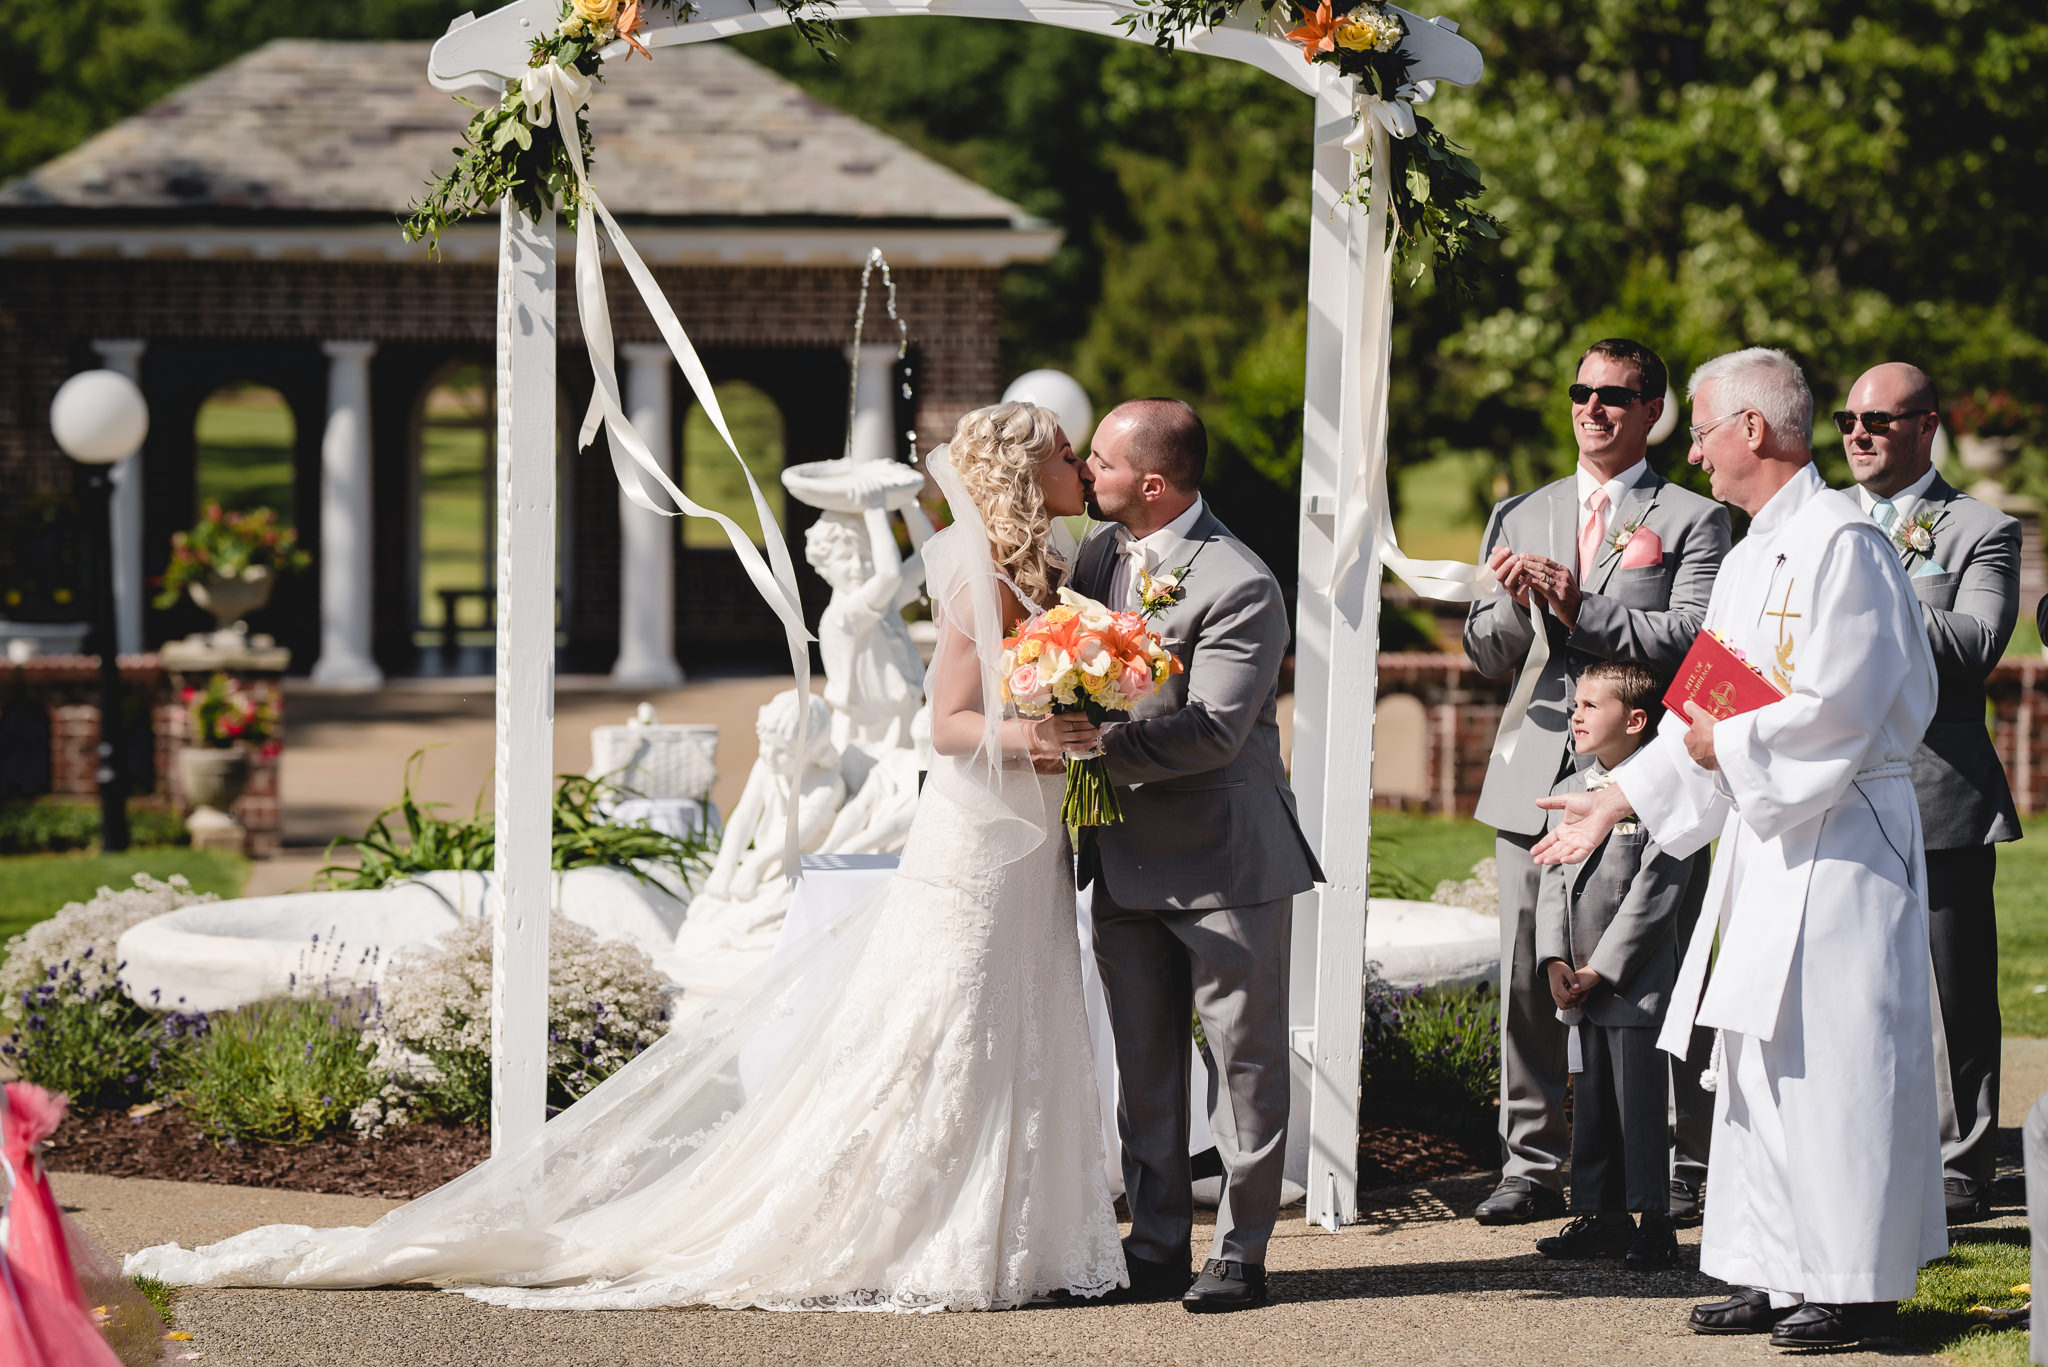 Bride and groom share their first kiss at an outdoor wedding ceremony